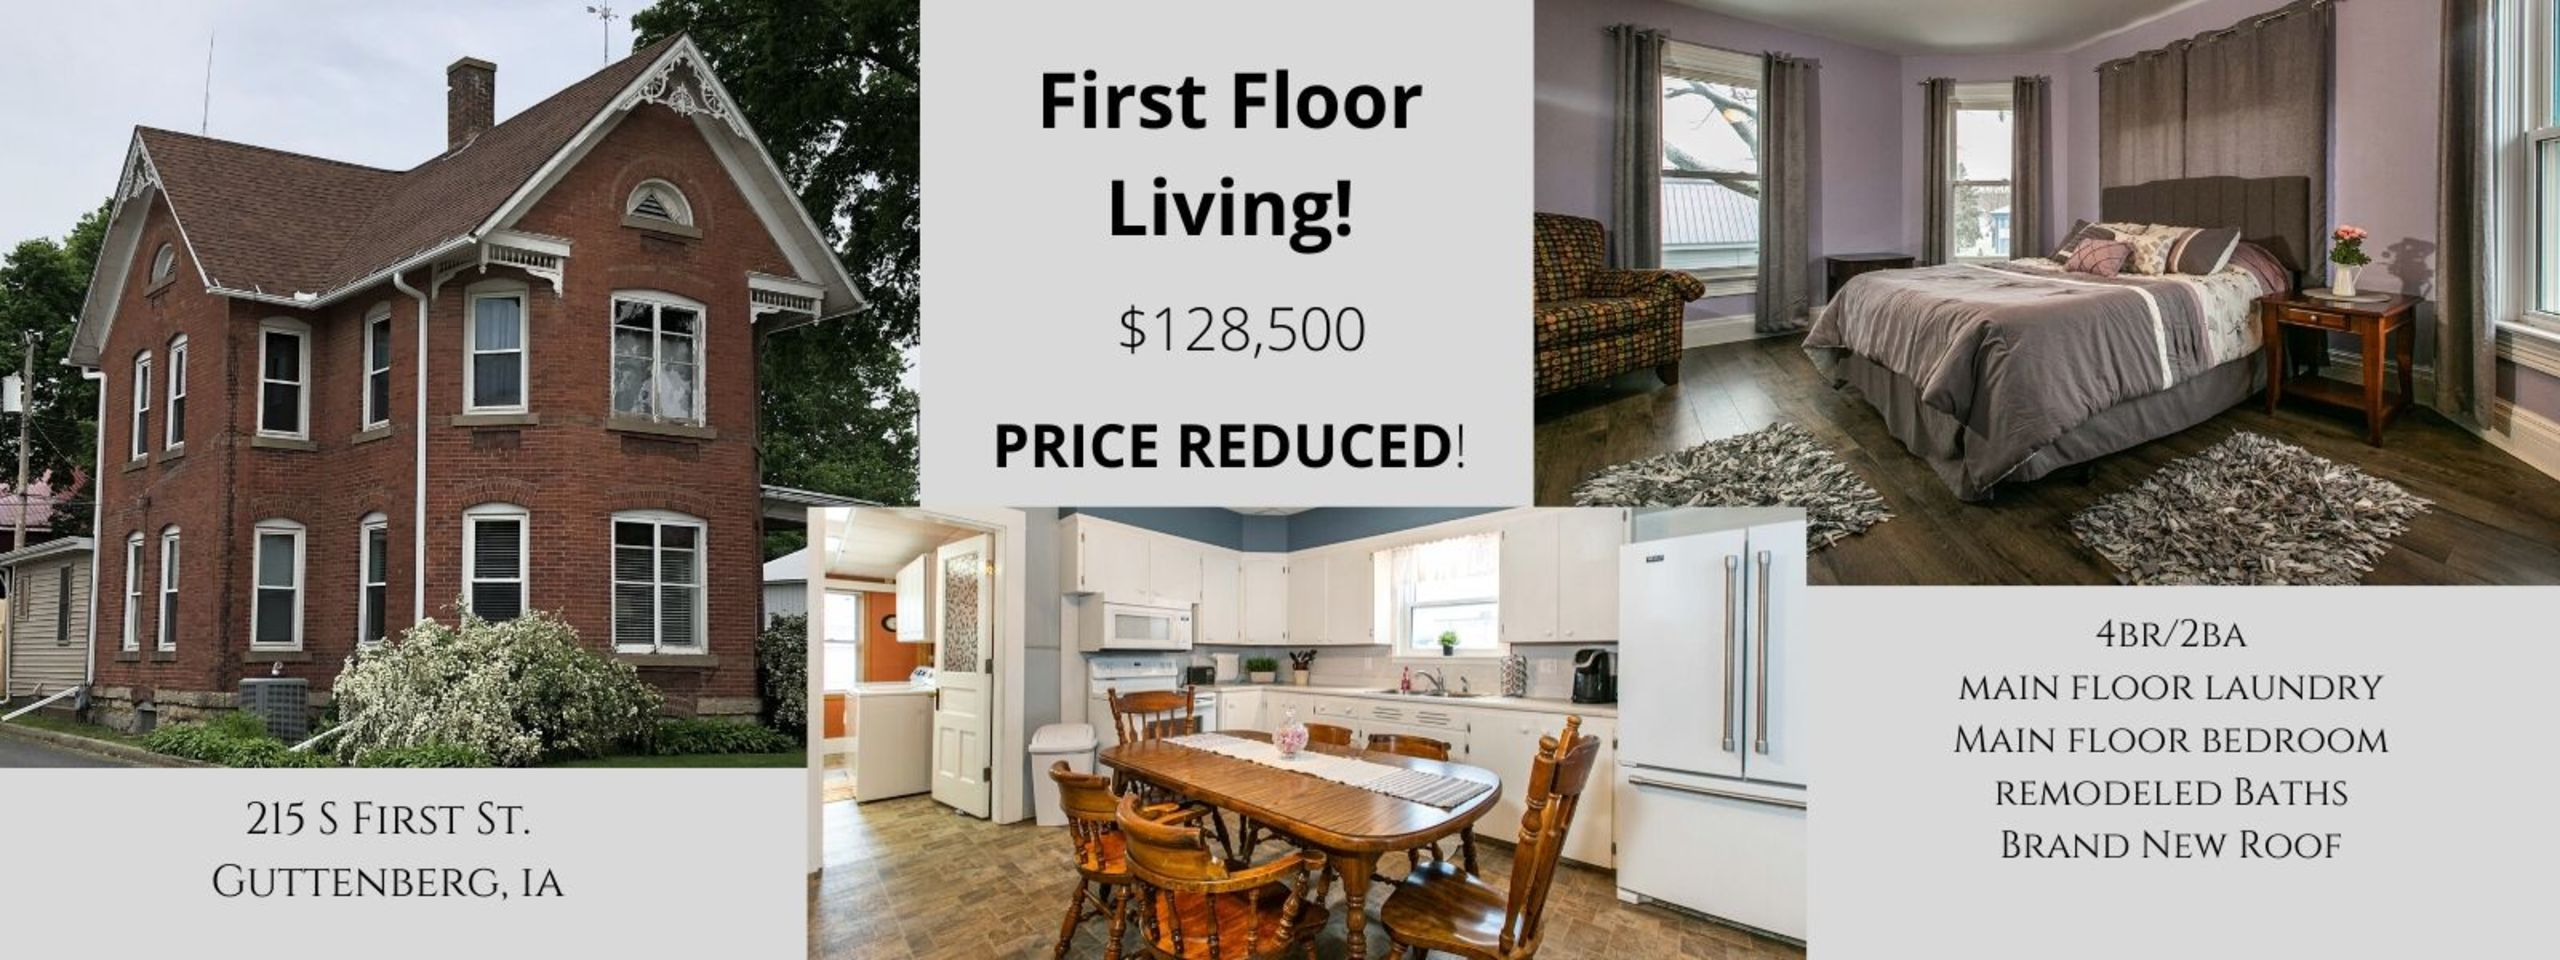 Beautiful Updated Home in Downtown Guttenberg!  Call Jonna for a showing.   563.580.7522